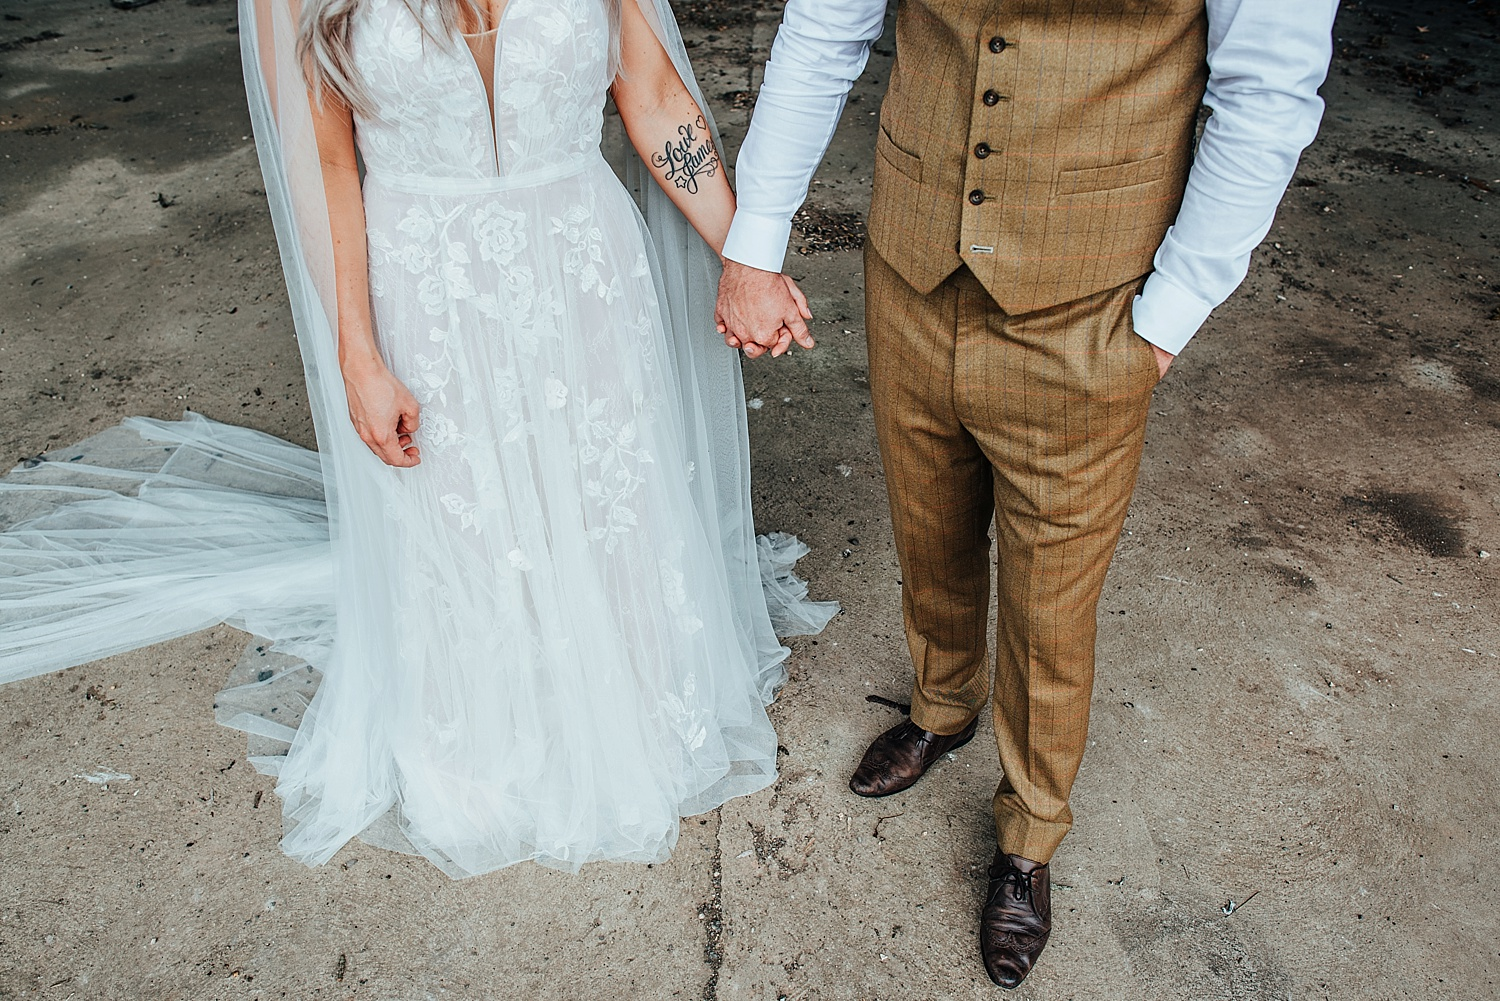 tatooed boho bride wearing caped wedding dress holding hands with groom